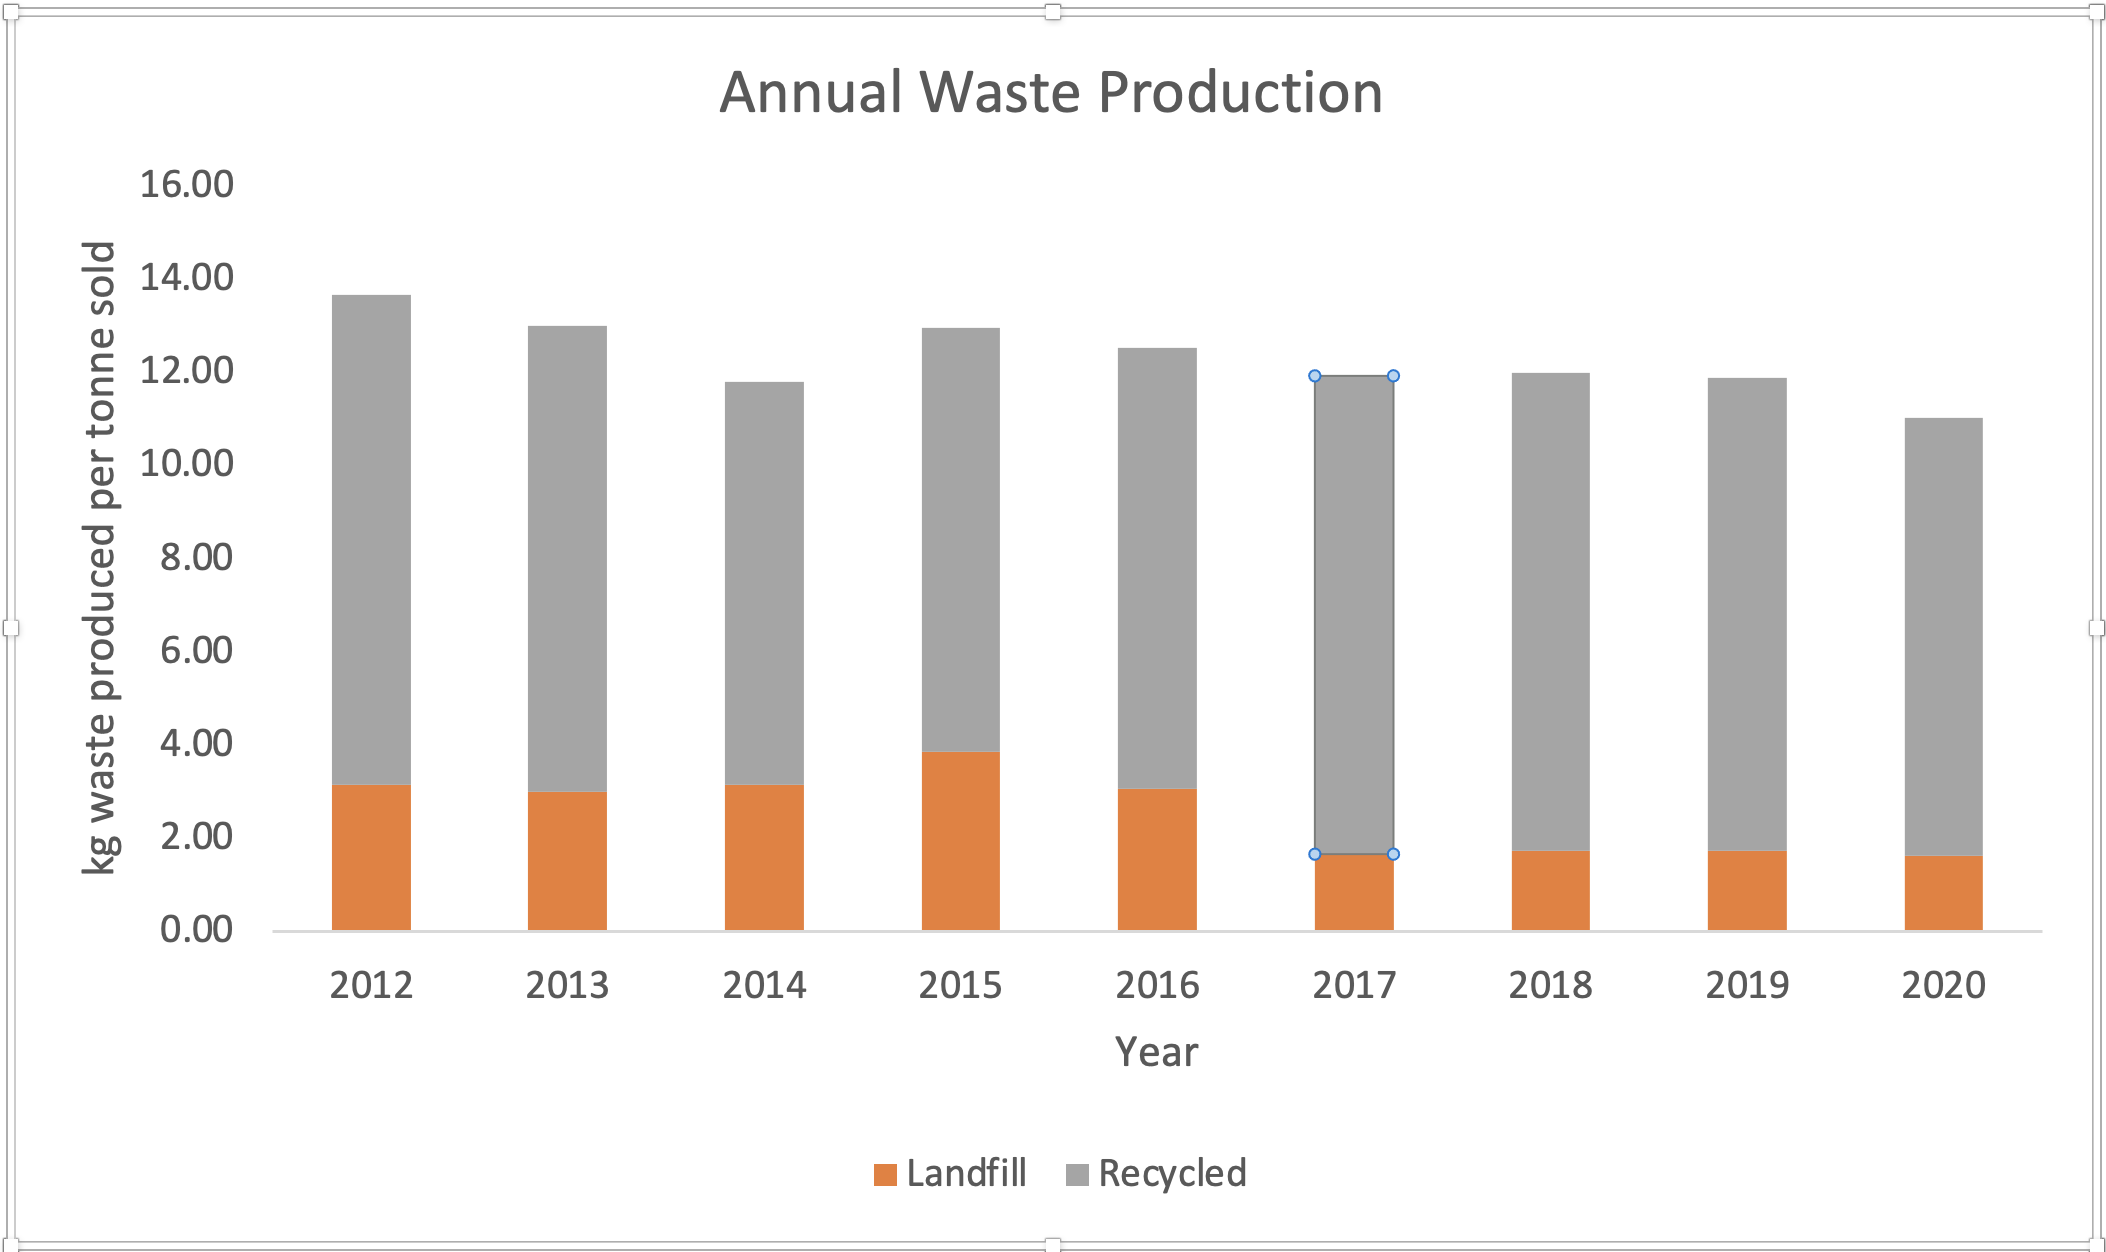 annual-waste-production-2020